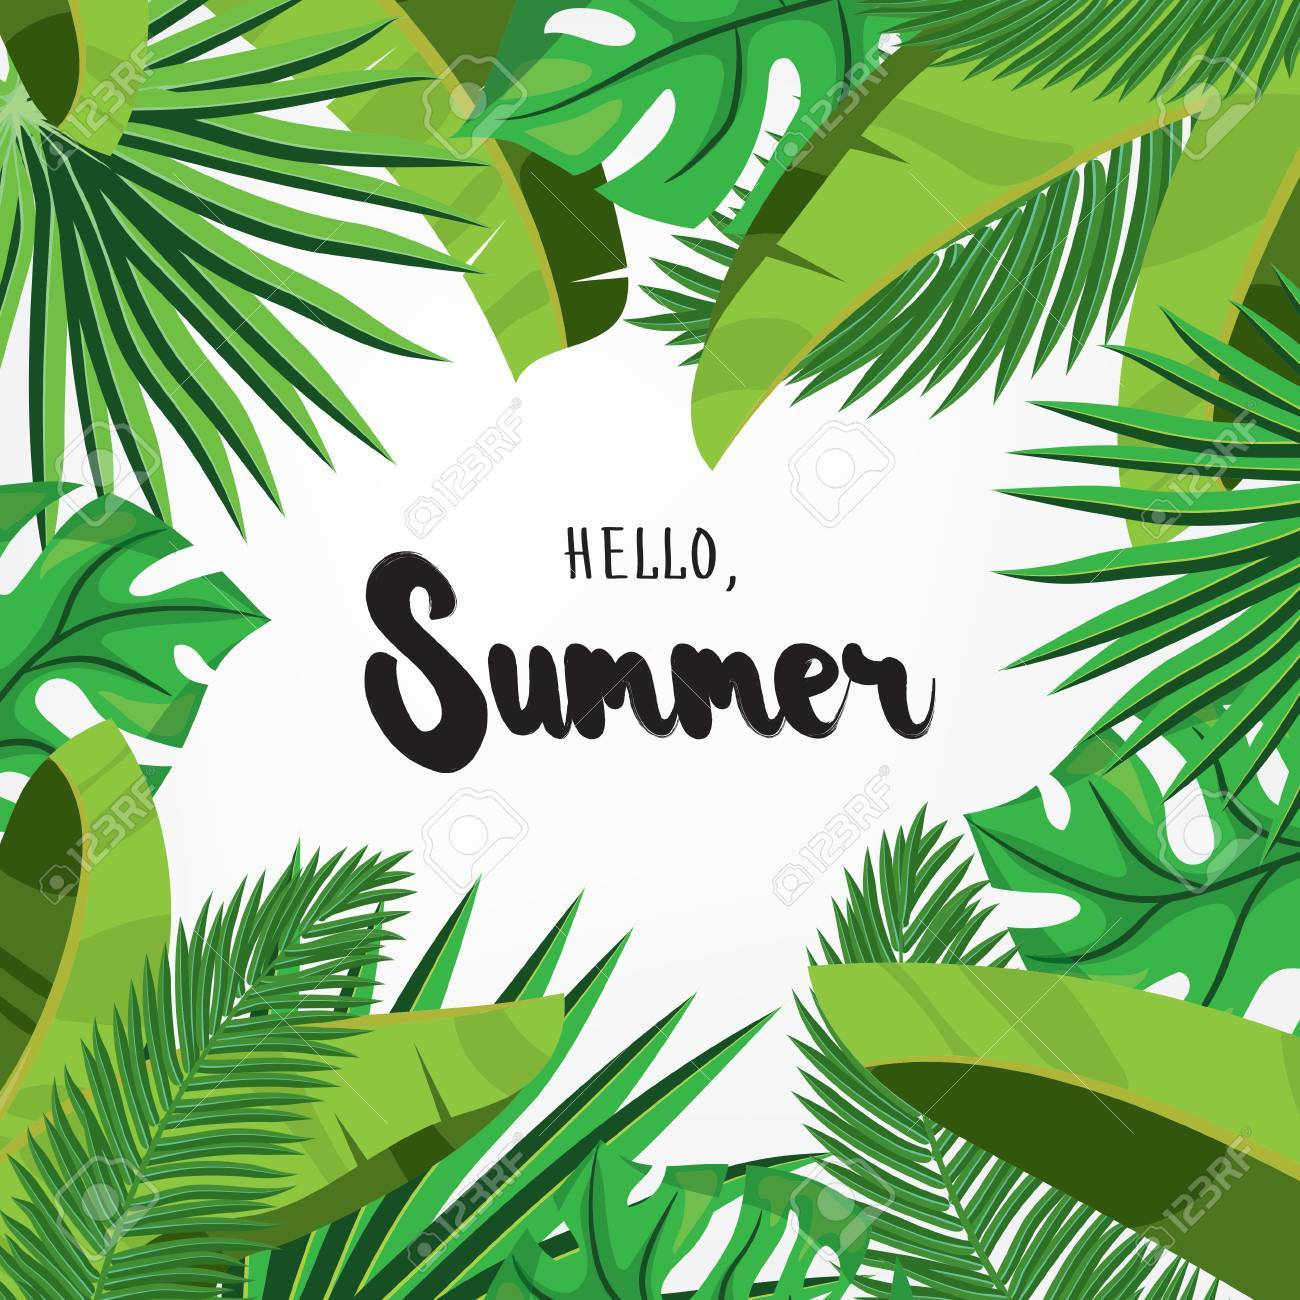 Hello, Summer. Holiday Greeting Card With Tropical Palm Leaves And  Calligraphy Elements. Handwritten